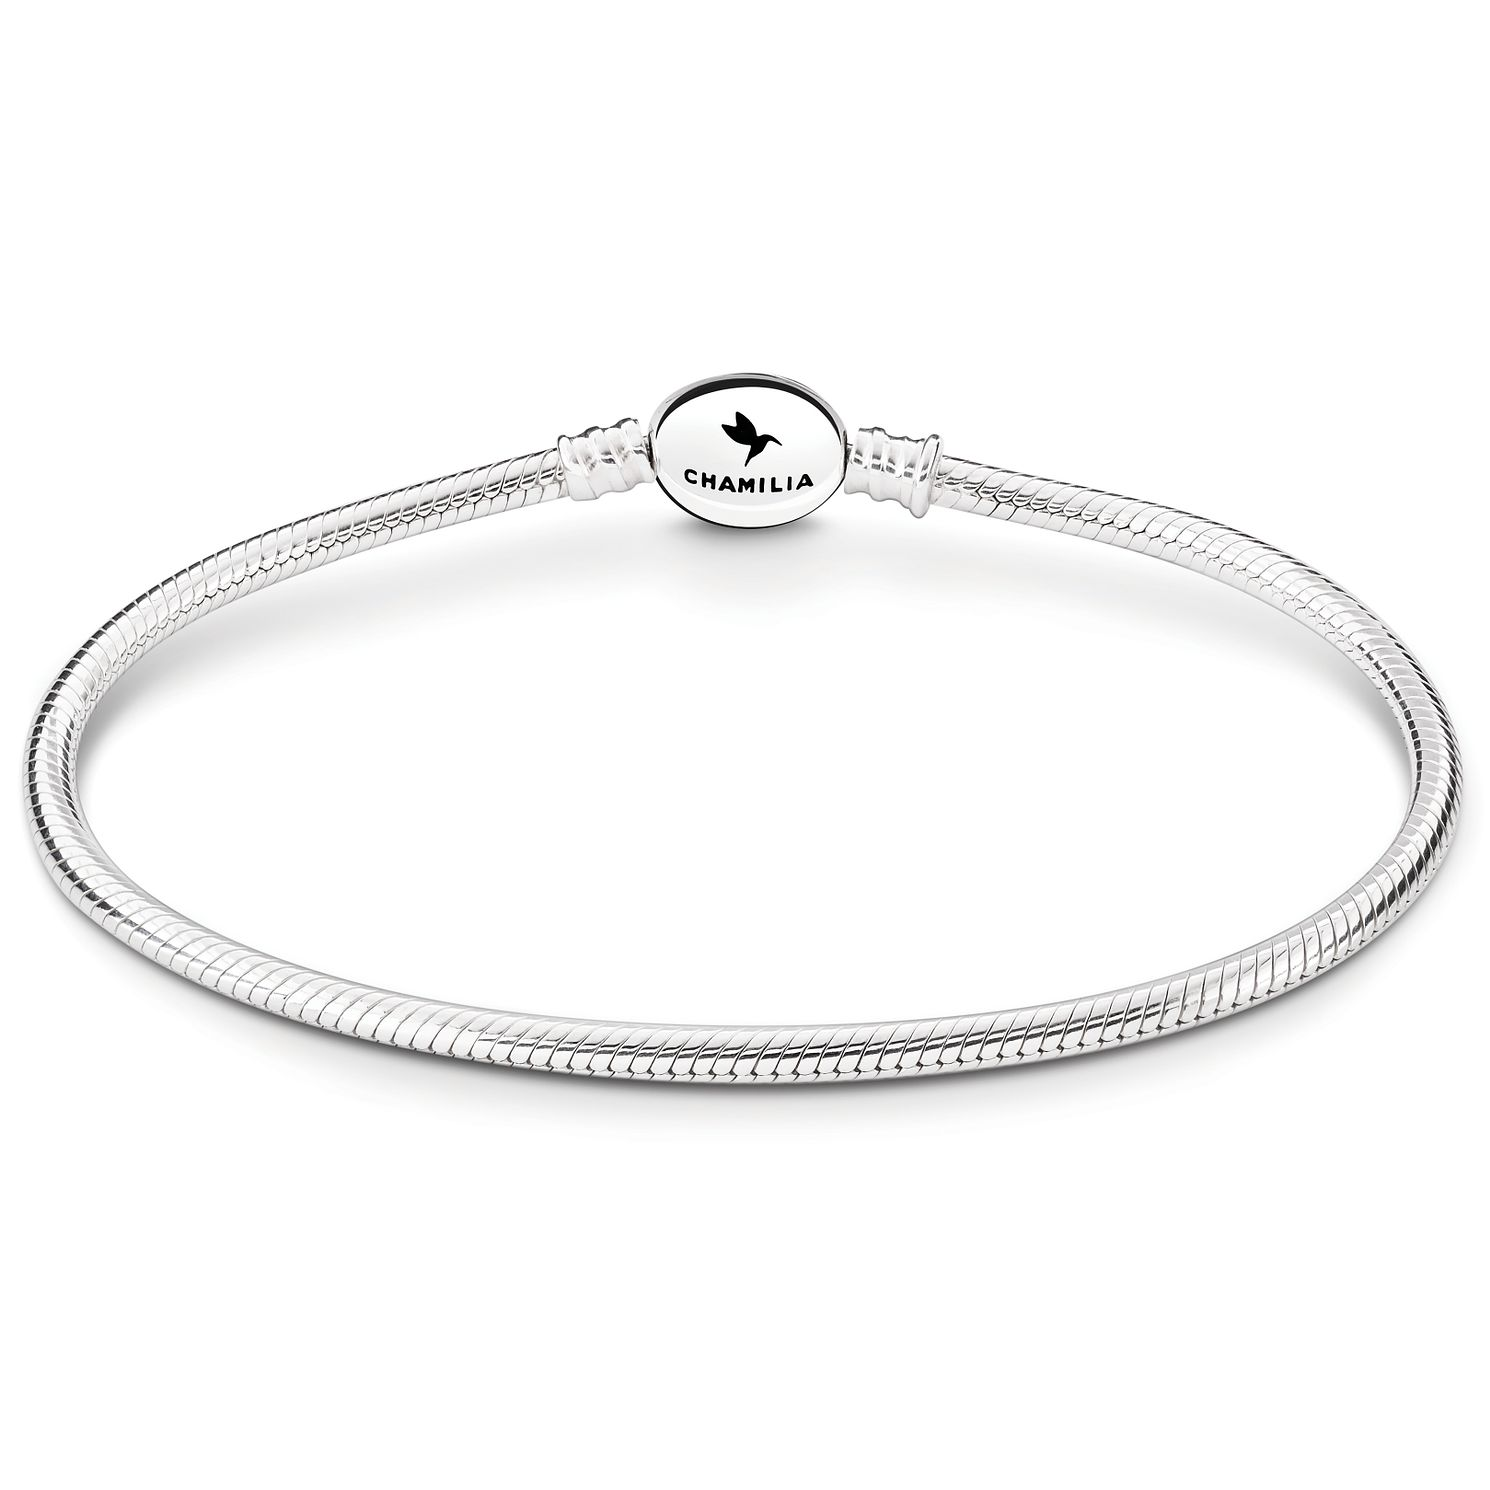 Chamilia Oval Snap Bracelet 7.9 inches - Product number 4969499